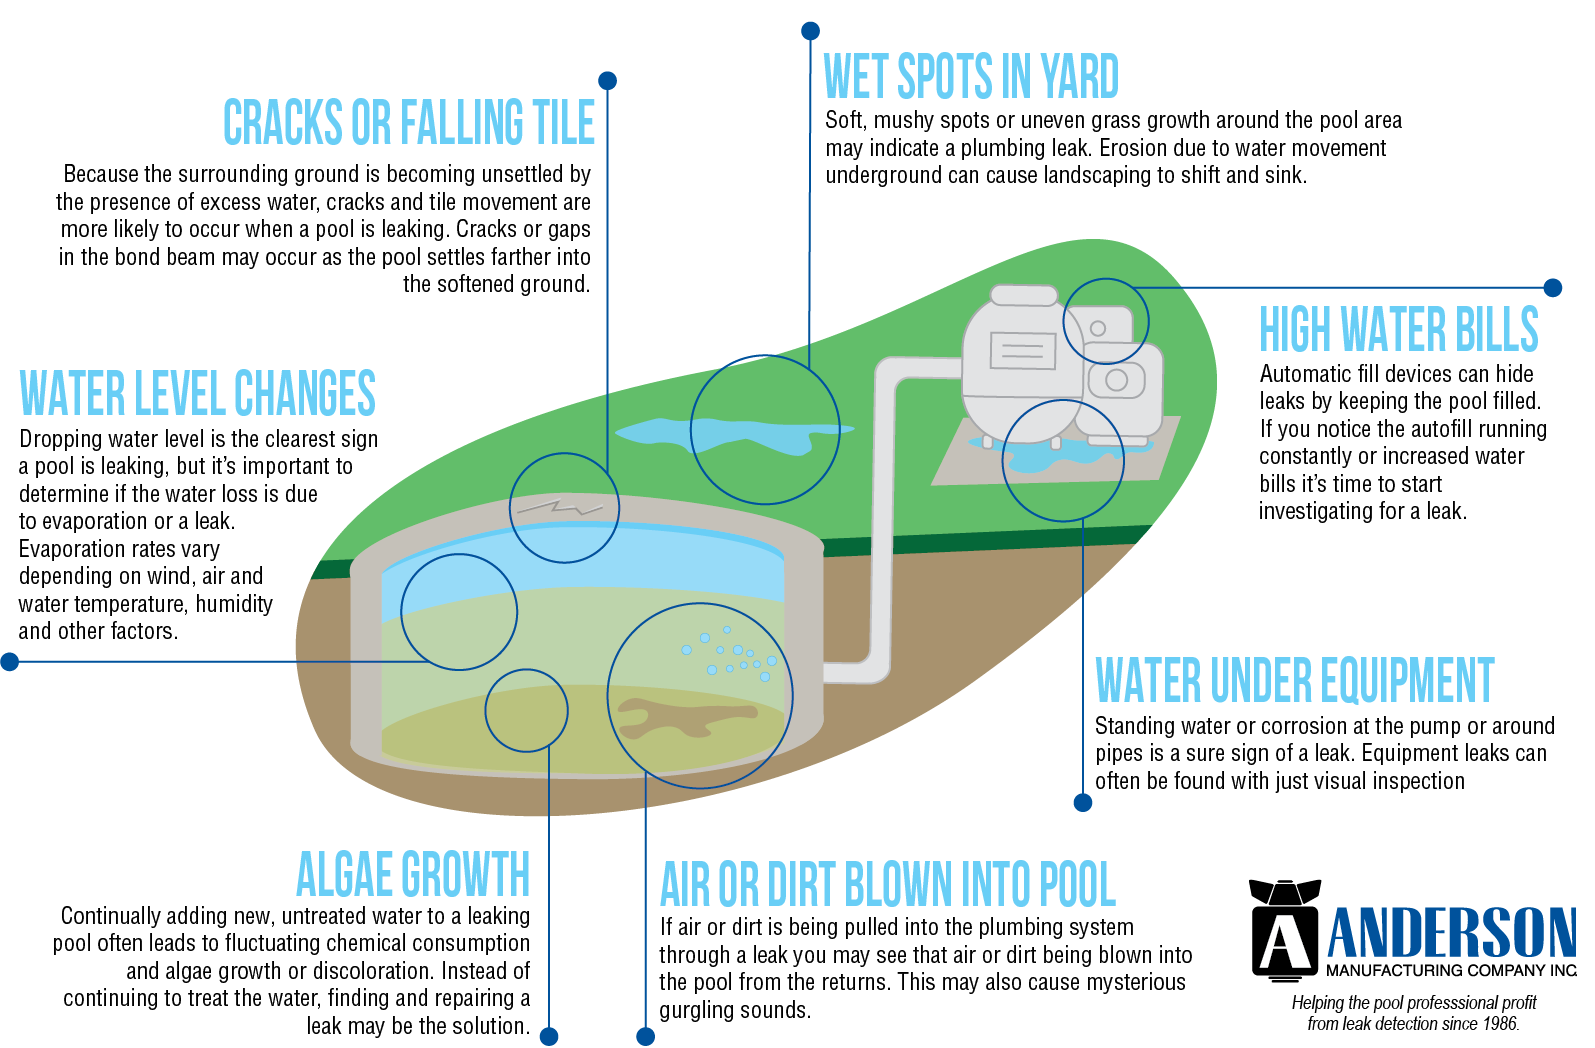 infographic showing the common signs of a leaking pool